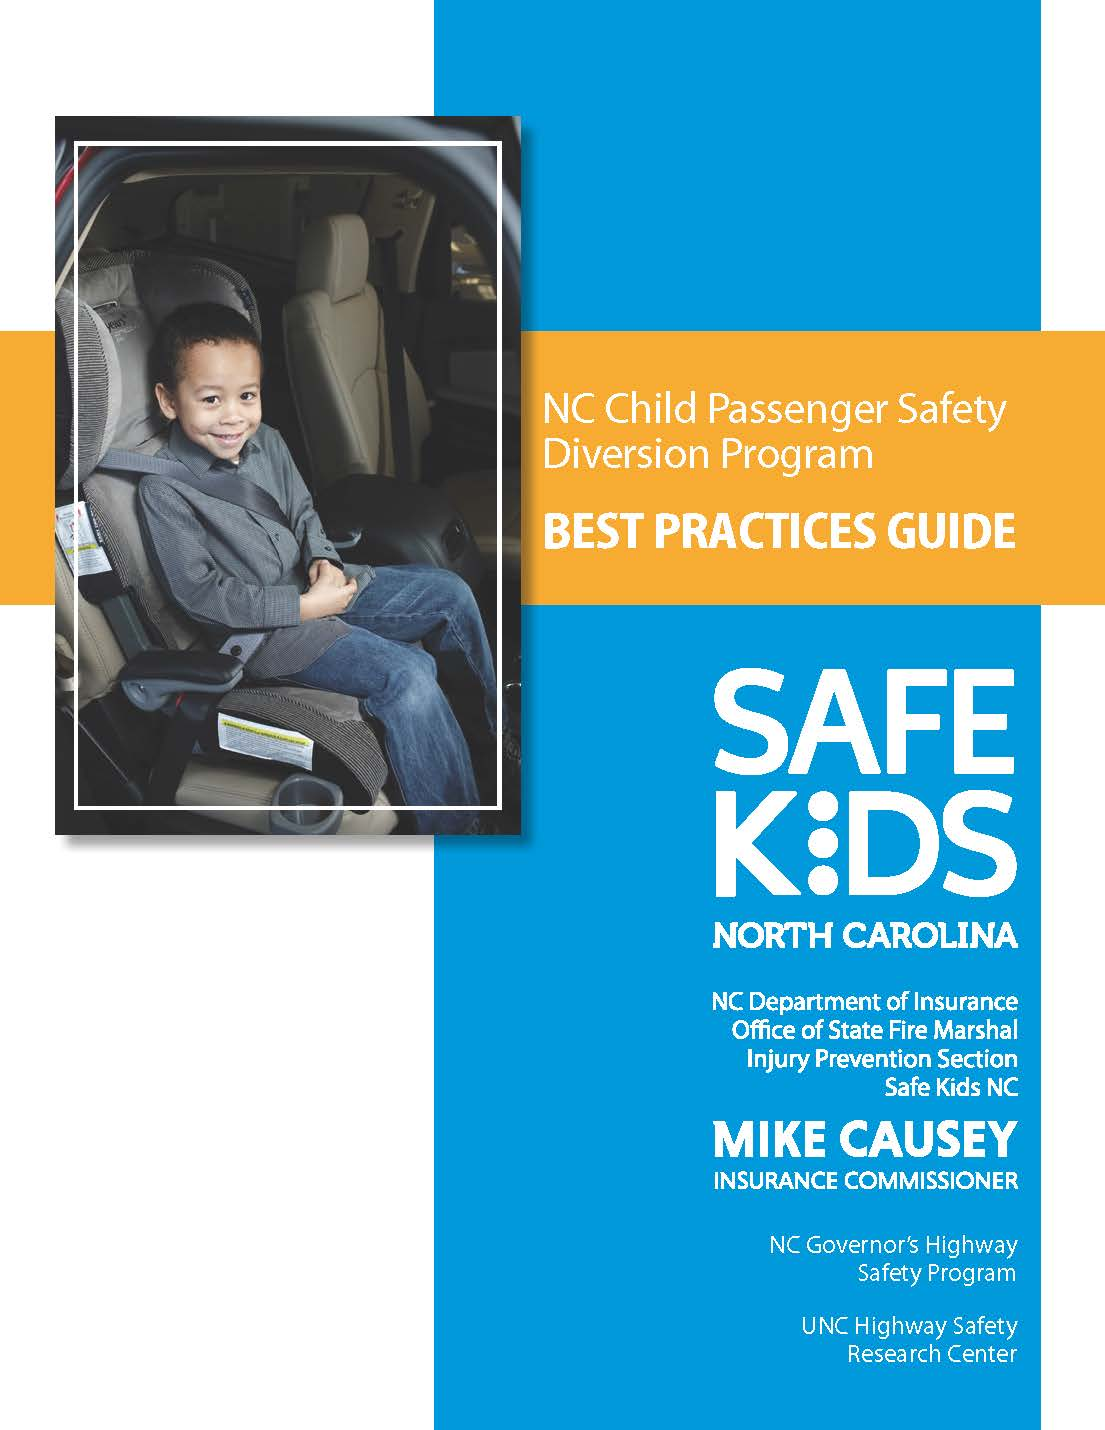 Image CPS Diversion Program Best Practice Guide-1st page